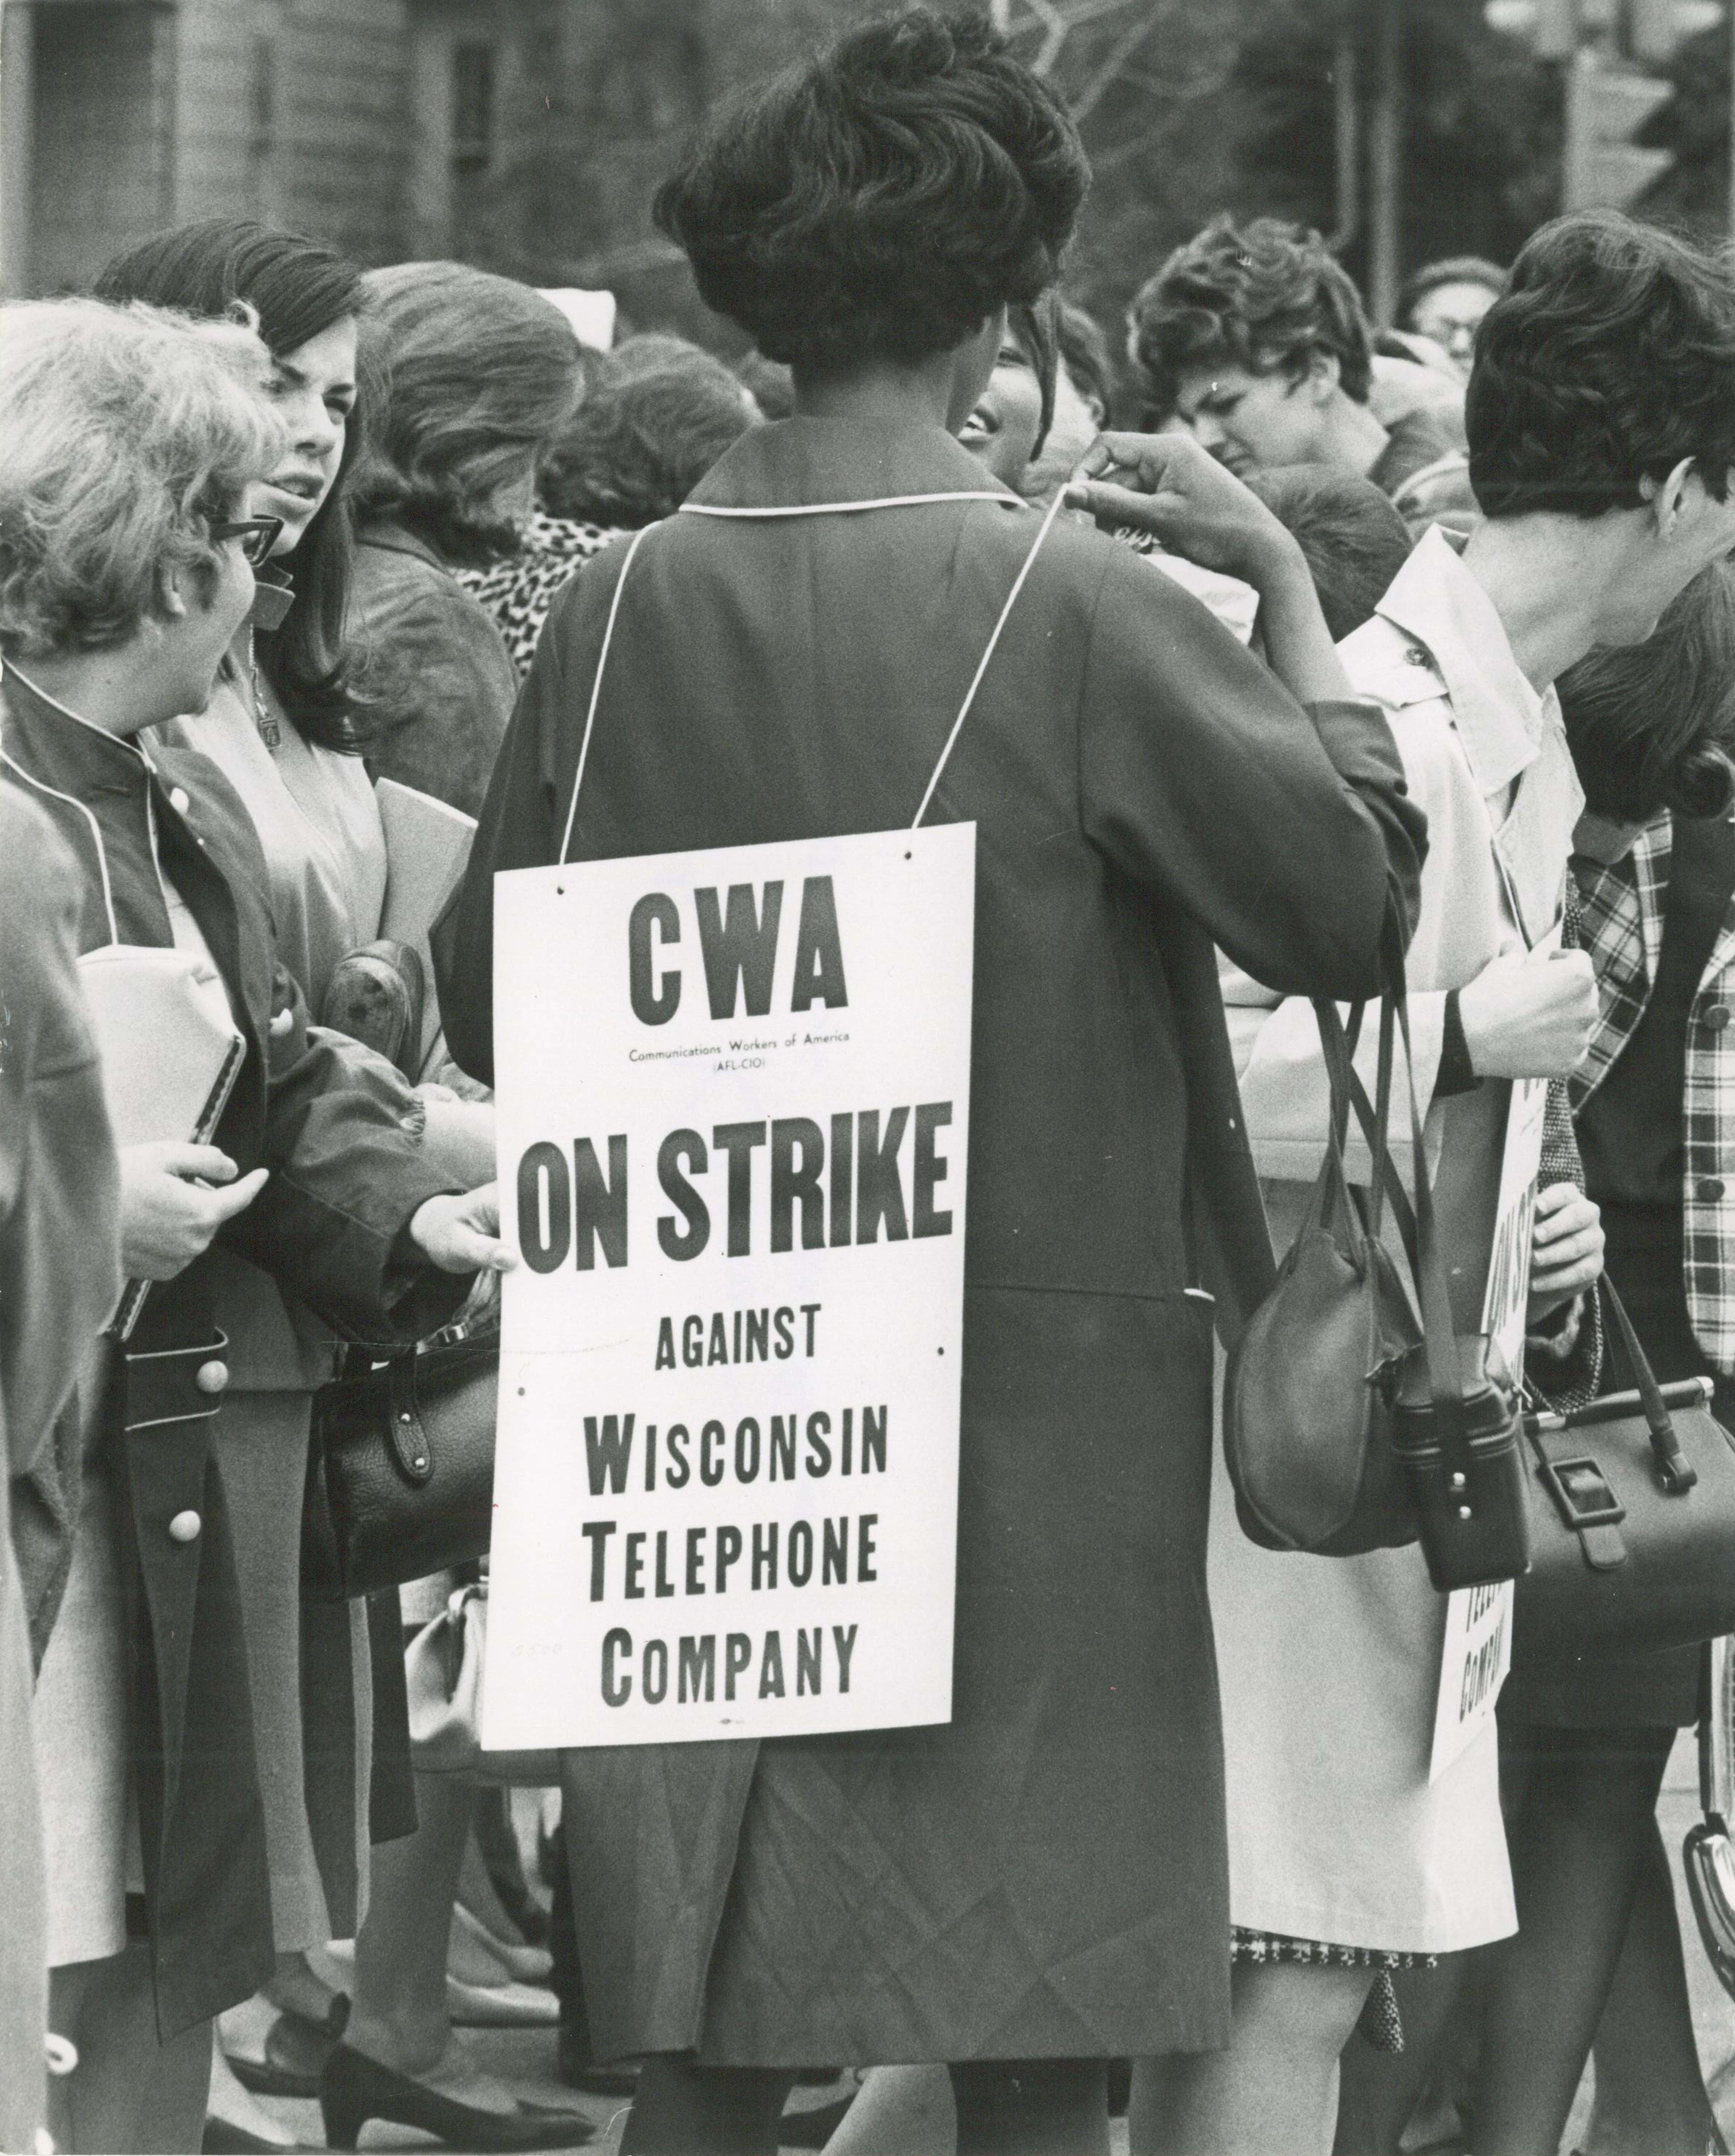 <table class=&quot;lightbox&quot;><tr><td colspan=2 class=&quot;lightbox-title&quot;>Picketing the Wisconsin Telephone Company</td></tr><tr><td colspan=2 class=&quot;lightbox-caption&quot;>Female members of the Communications Workers of America strike against the Wisconsin Telephone Company in 1968.</td></tr><tr><td colspan=2 class=&quot;lightbox-spacer&quot;></td></tr><tr class=&quot;lightbox-detail&quot;><td class=&quot;cell-title&quot;>Source: </td><td class=&quot;cell-value&quot;>From the Historic Photo Collection of the Milwaukee Public Library. Reprinted with permission.<br /><a href=&quot;http://content.mpl.org/cdm/singleitem/collection/HstoricPho/id/4020/rec/35&quot; target=&quot;_blank&quot;>Milwaukee Public Library</a></td></tr><tr class=&quot;filler-row&quot;><td colspan=2>&nbsp;</td></tr></table>